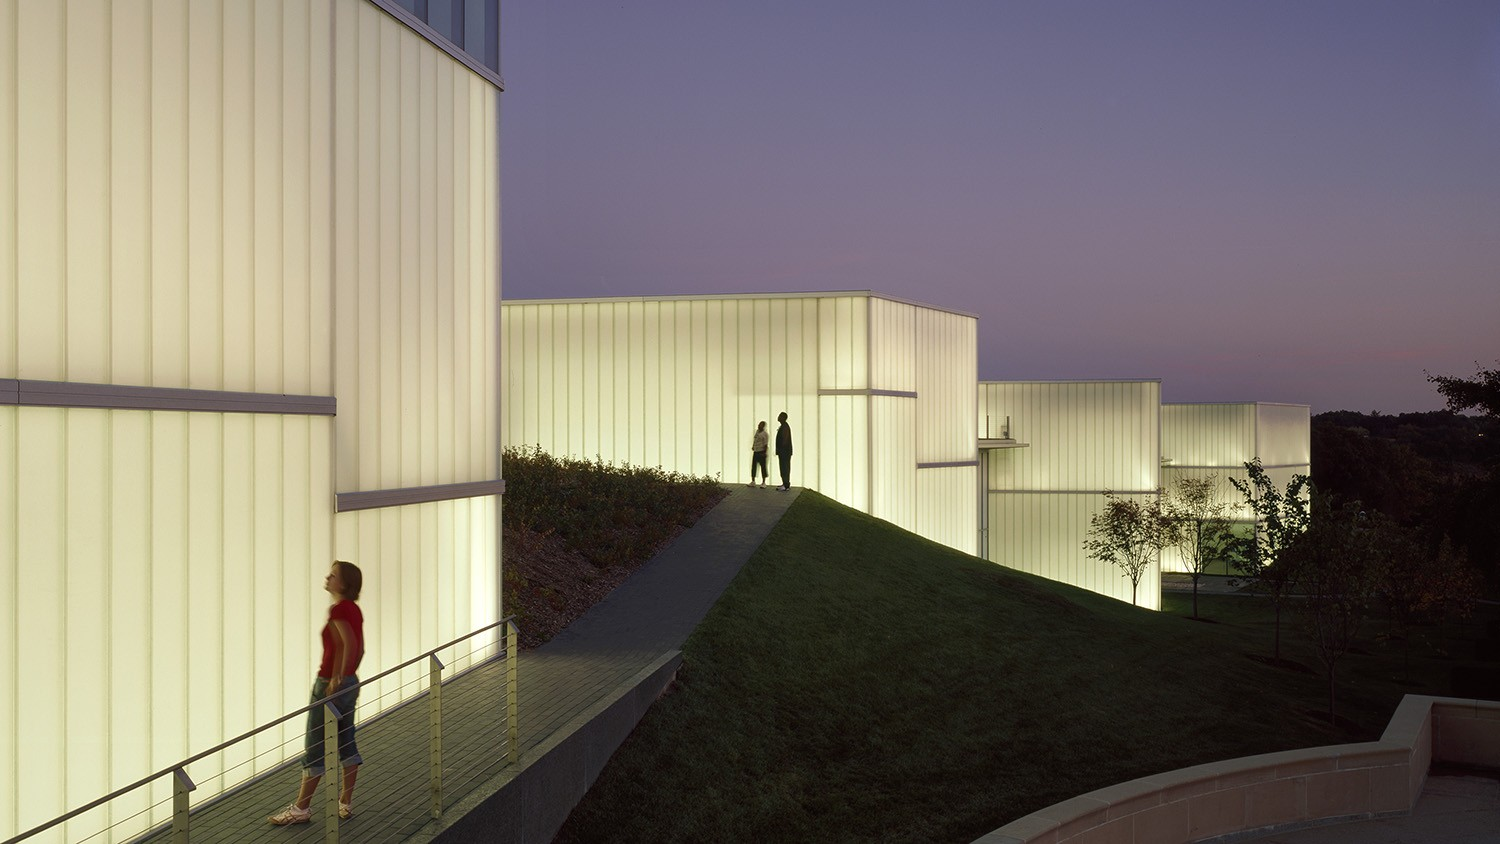 https://s3.us-east-2.amazonaws.com/steven-holl/uploads/projects/project-images/RolandeHalbe_NAMA_RH1625-51_WH.jpg